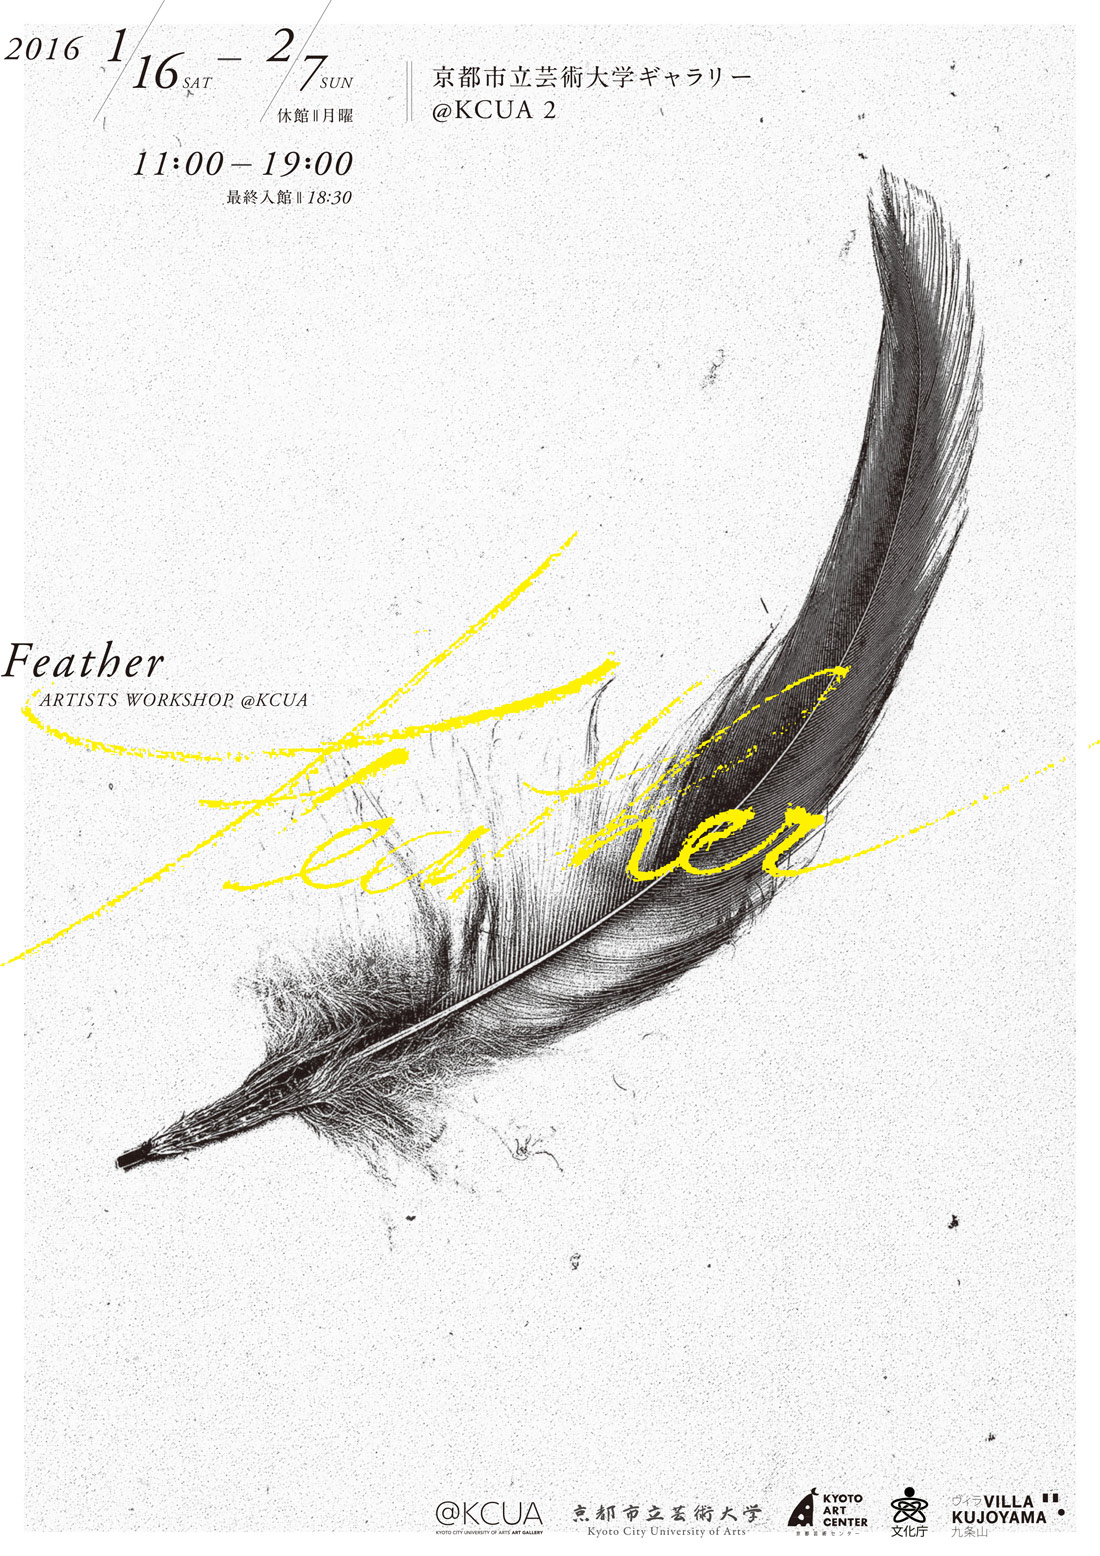 Feather - Affiche